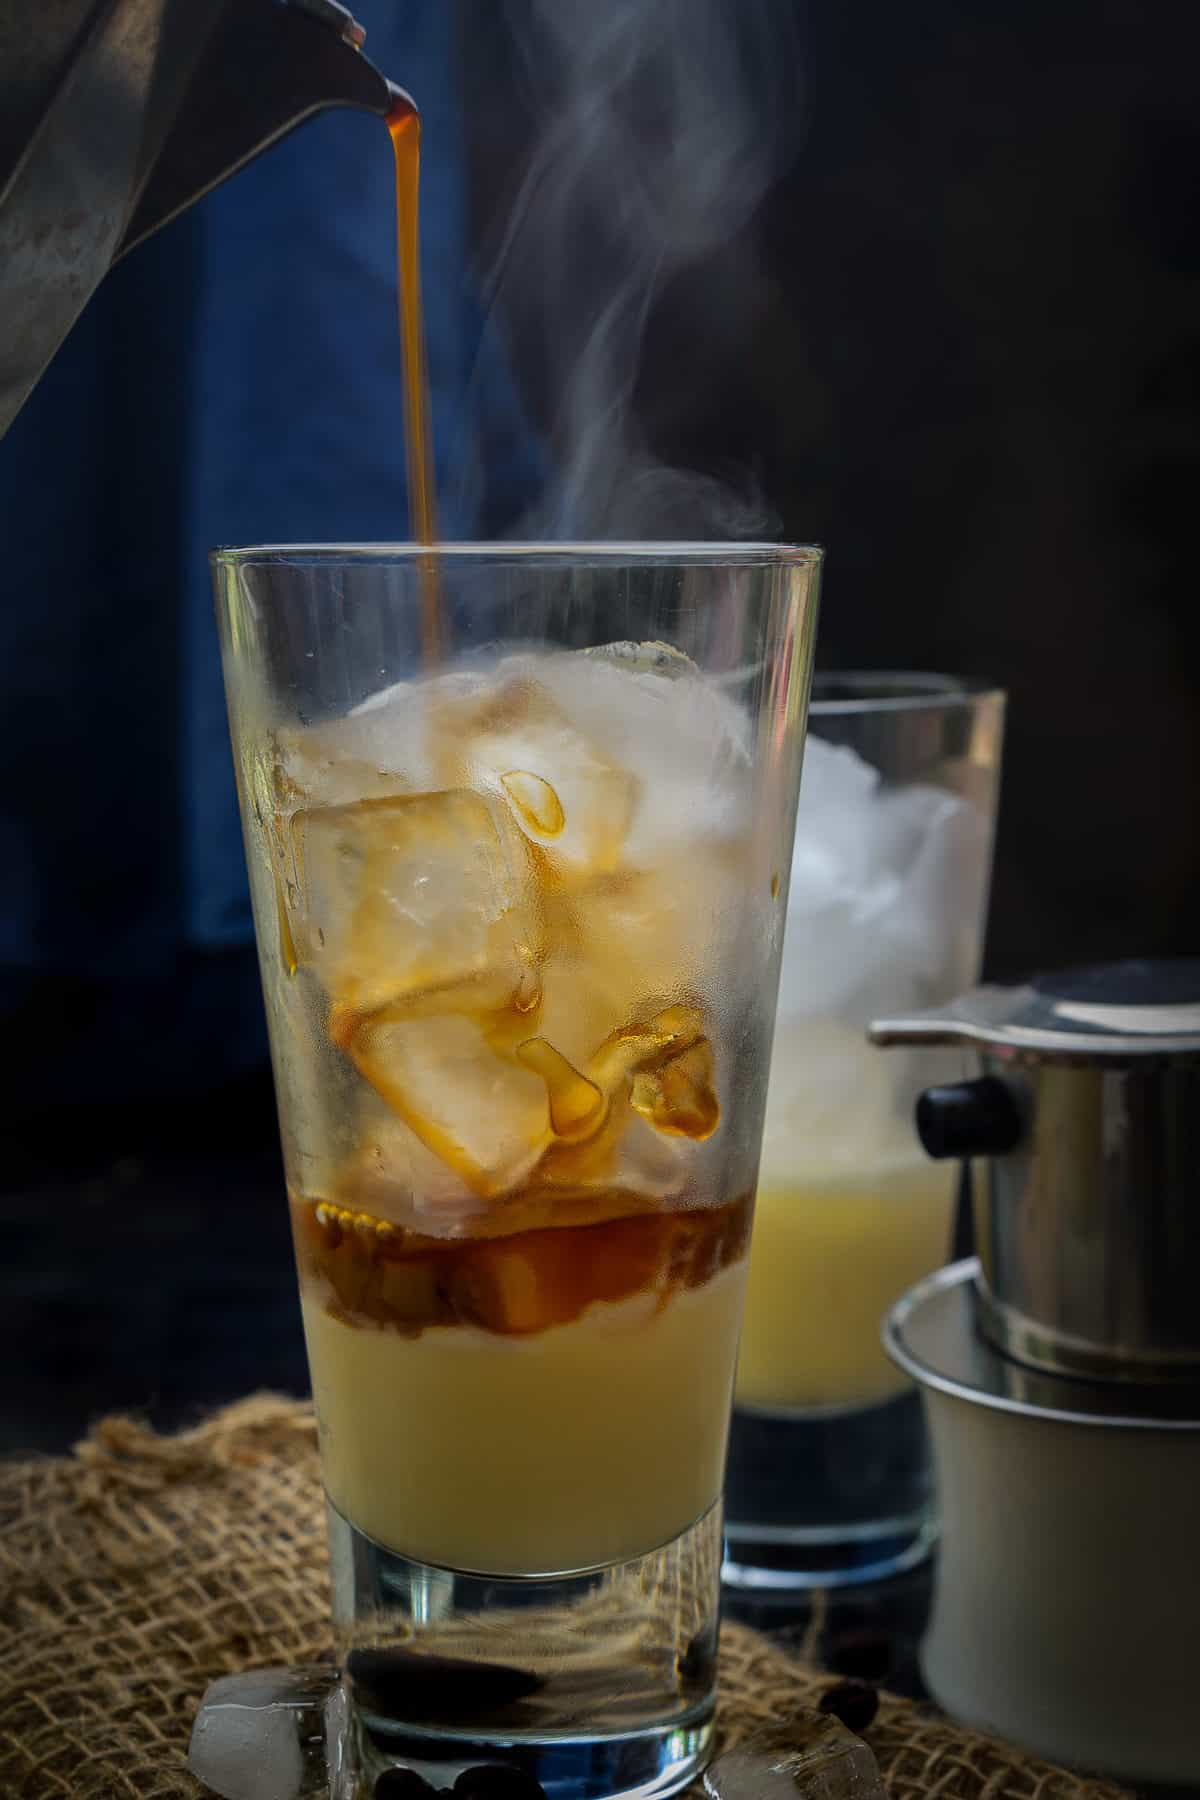 Brewed coffee pouring over the ice in a glass.